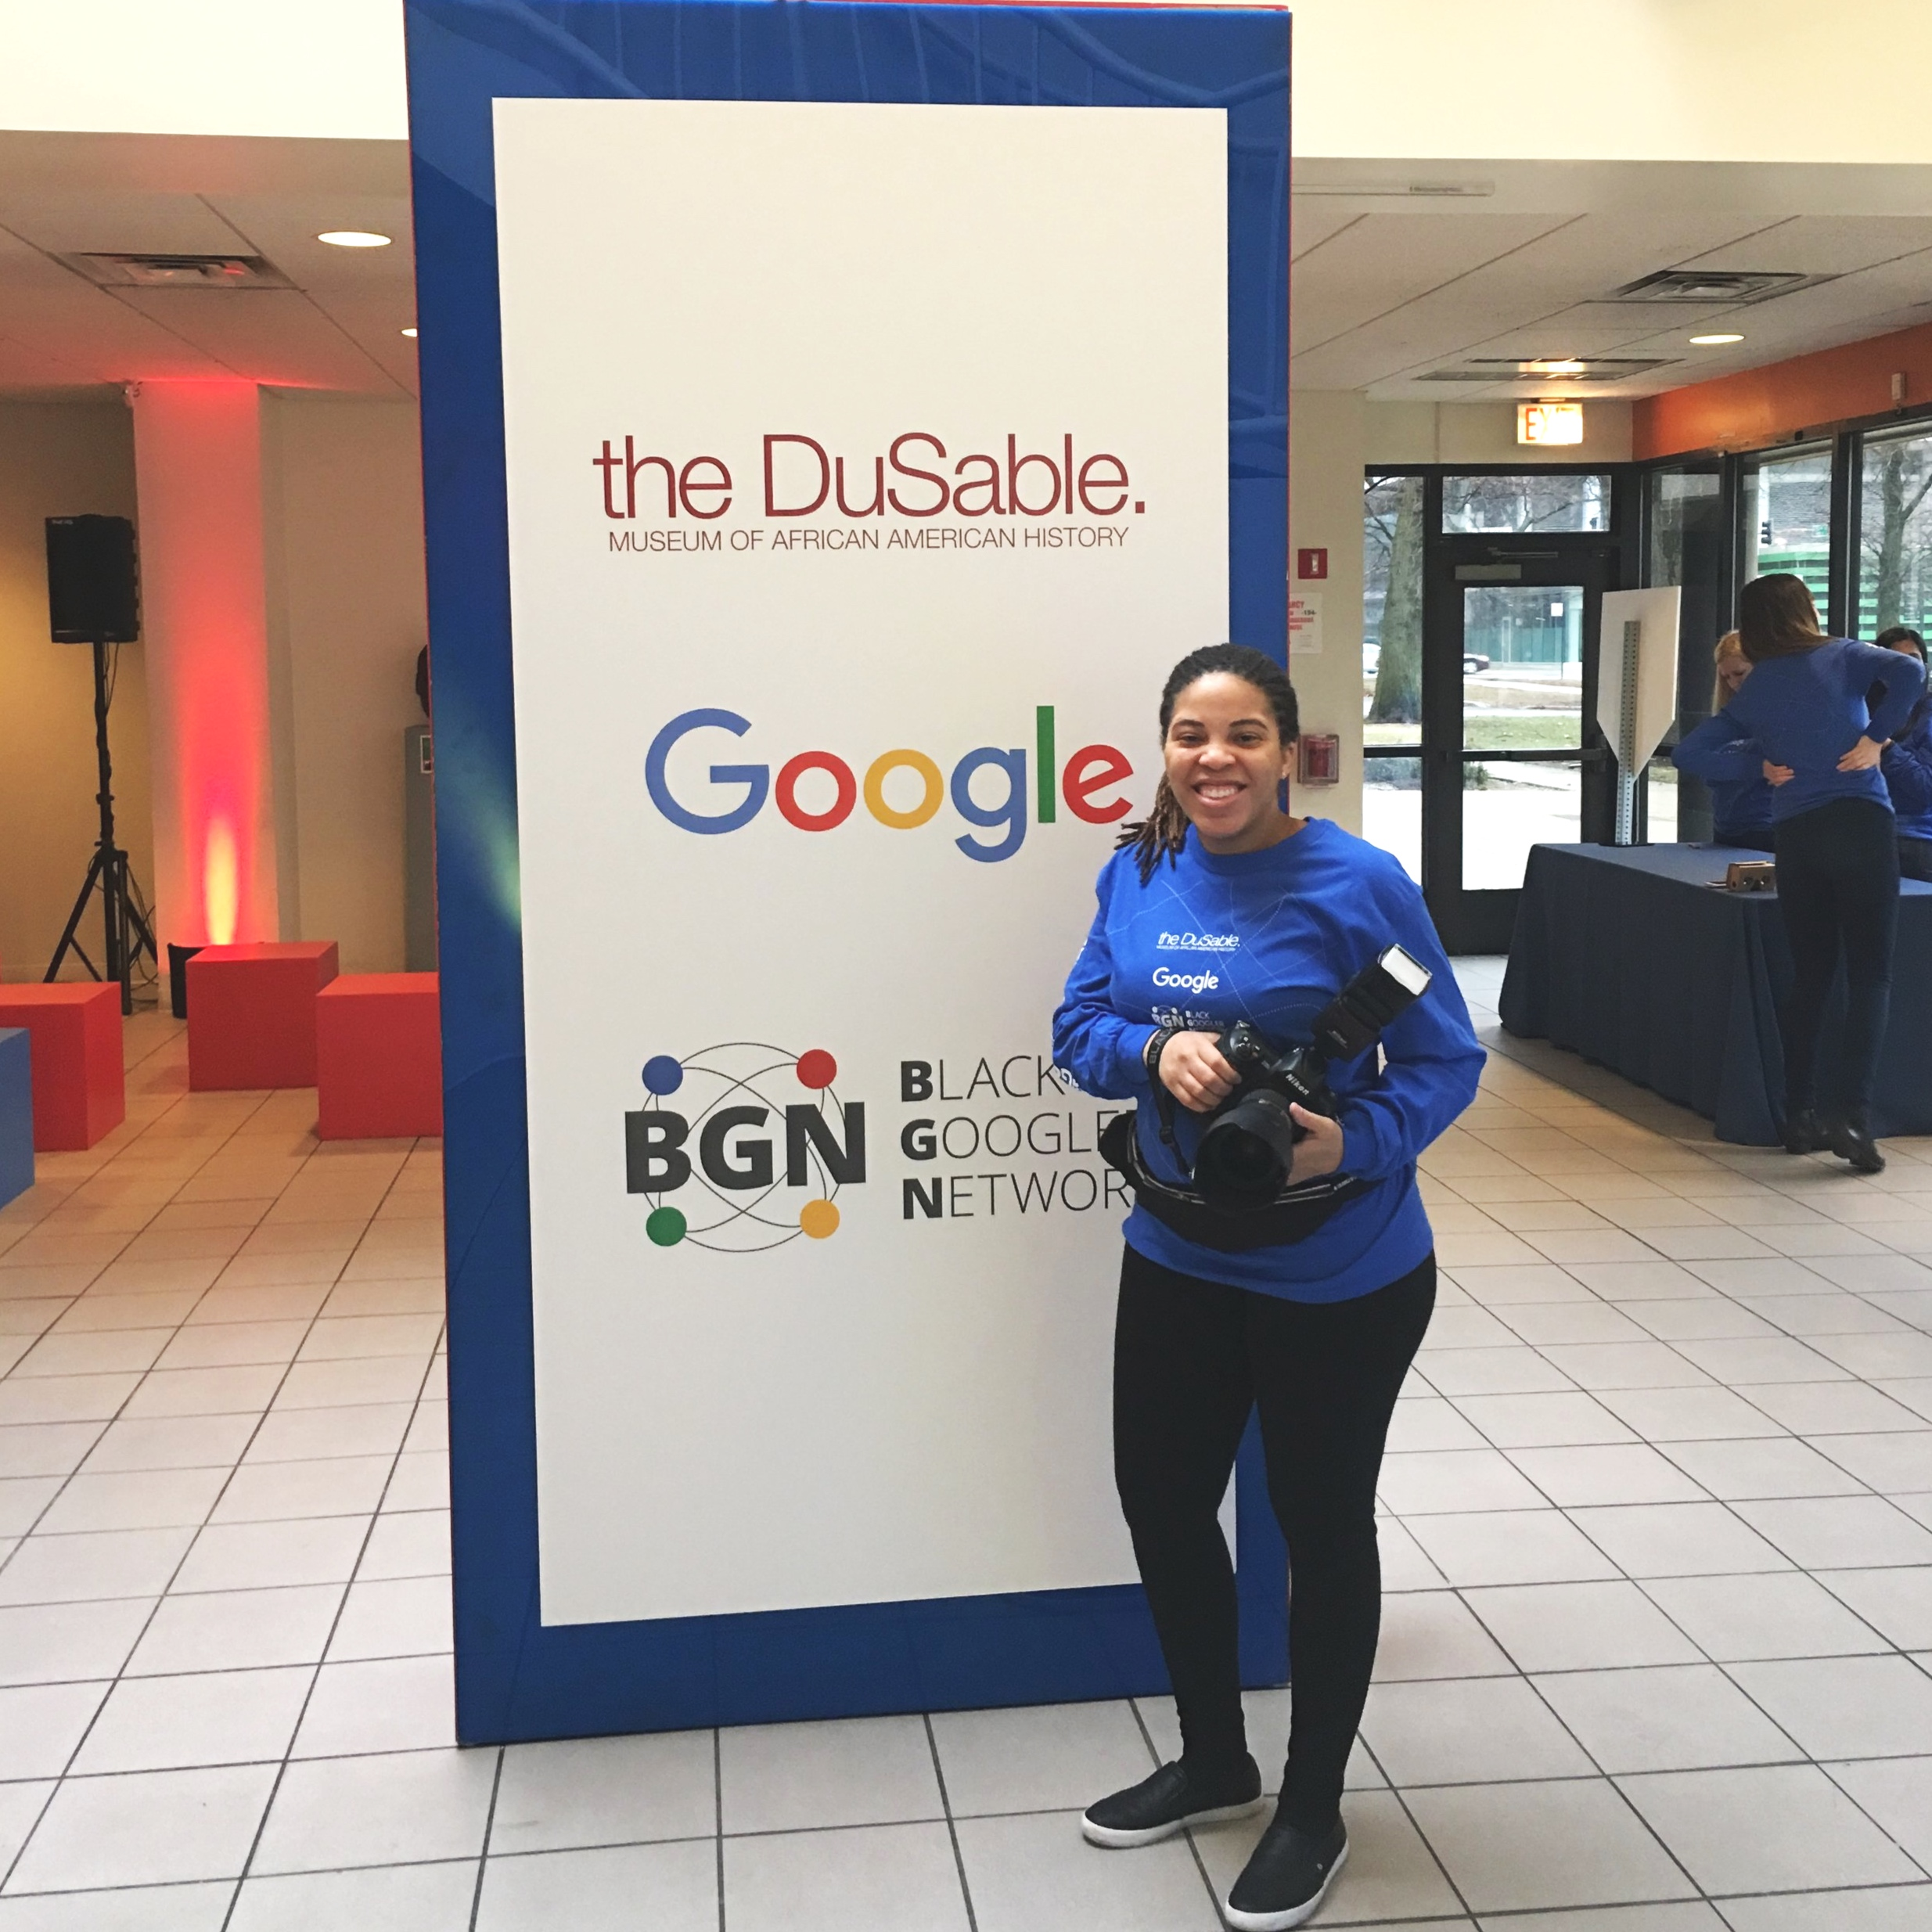 In partnership with Google & The DuSable Museum